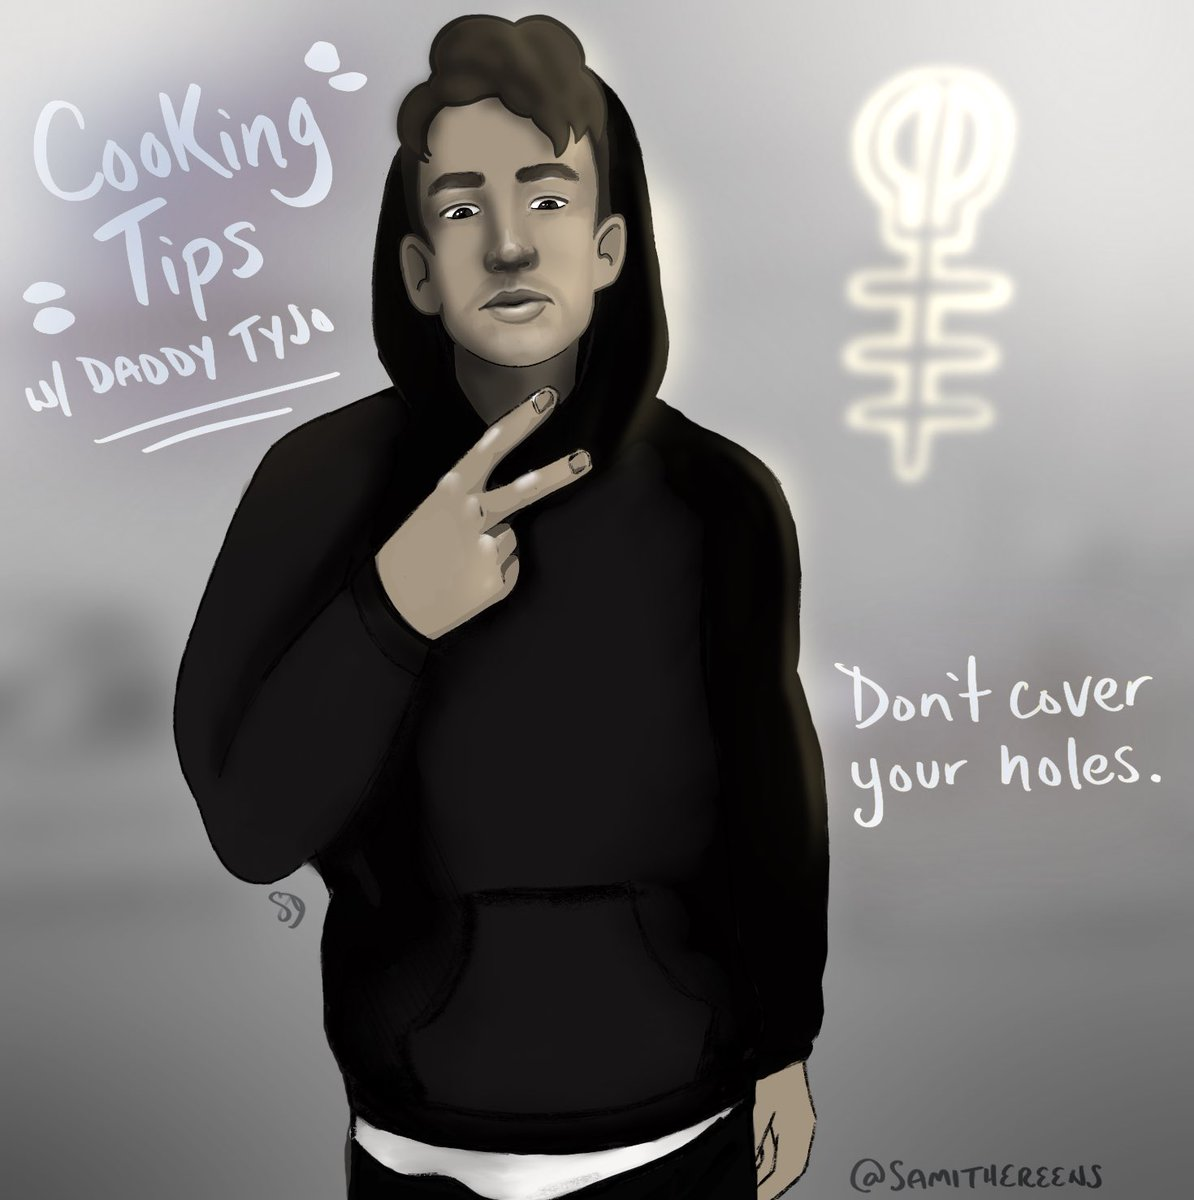 #cliqueart ft. @tylerrjoseph and his sage advice on mixing in the beats kitchen. Stay warm w a hoodie, but don't cover your ears, or it'll sound too bright. <br>http://pic.twitter.com/RzWXKbz01C